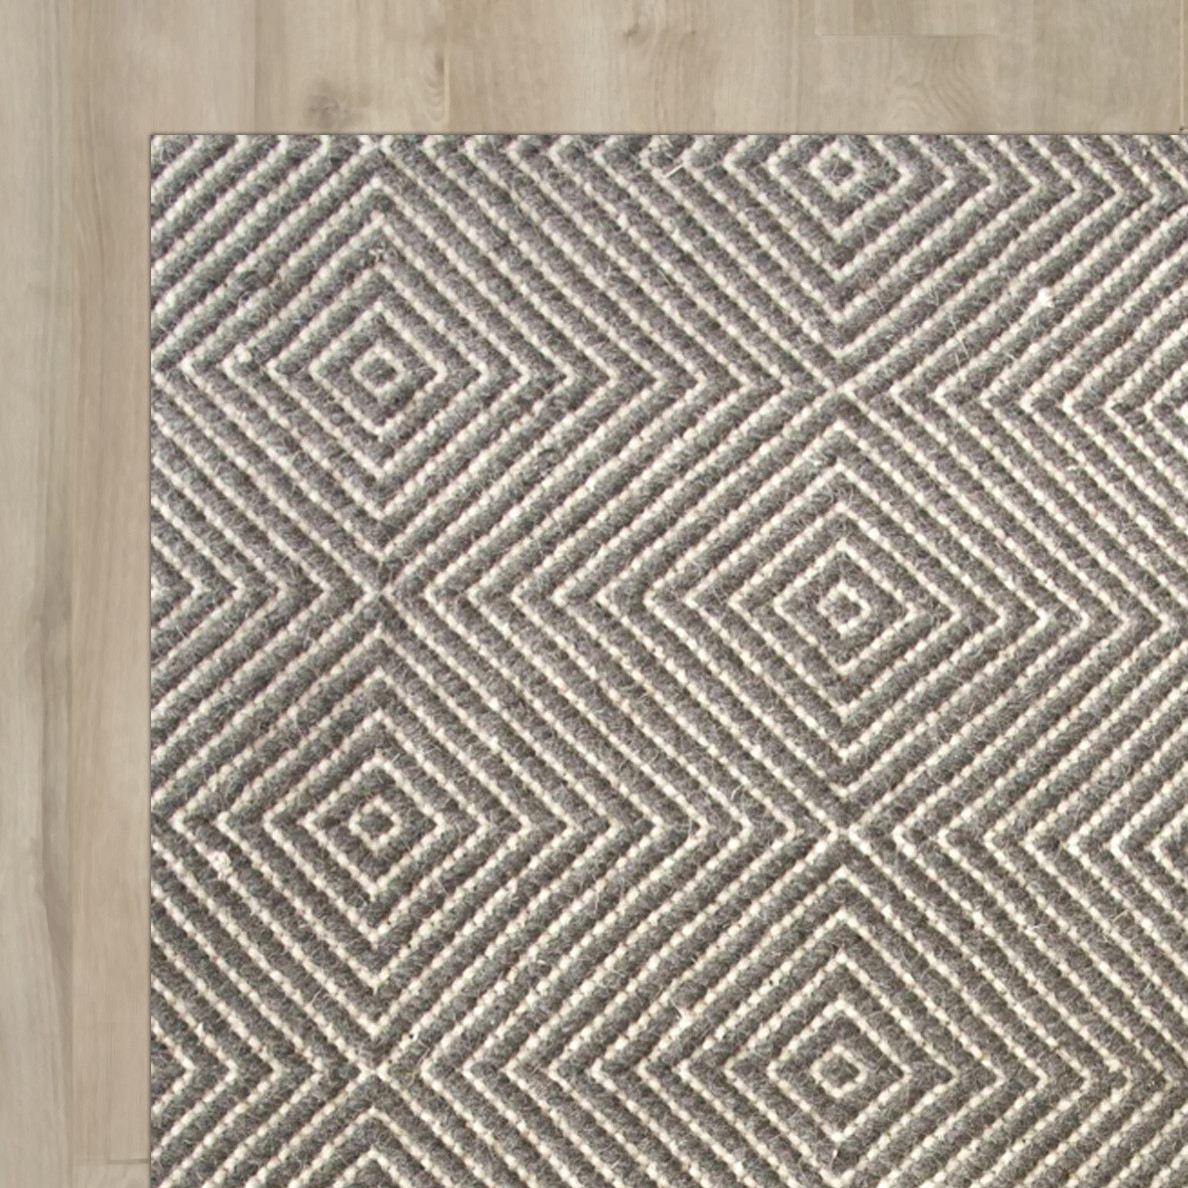 Flat Woven Wool Rugs Roselawnlutheran In Flat Weave Wool Area Rugs (#5 of 15)